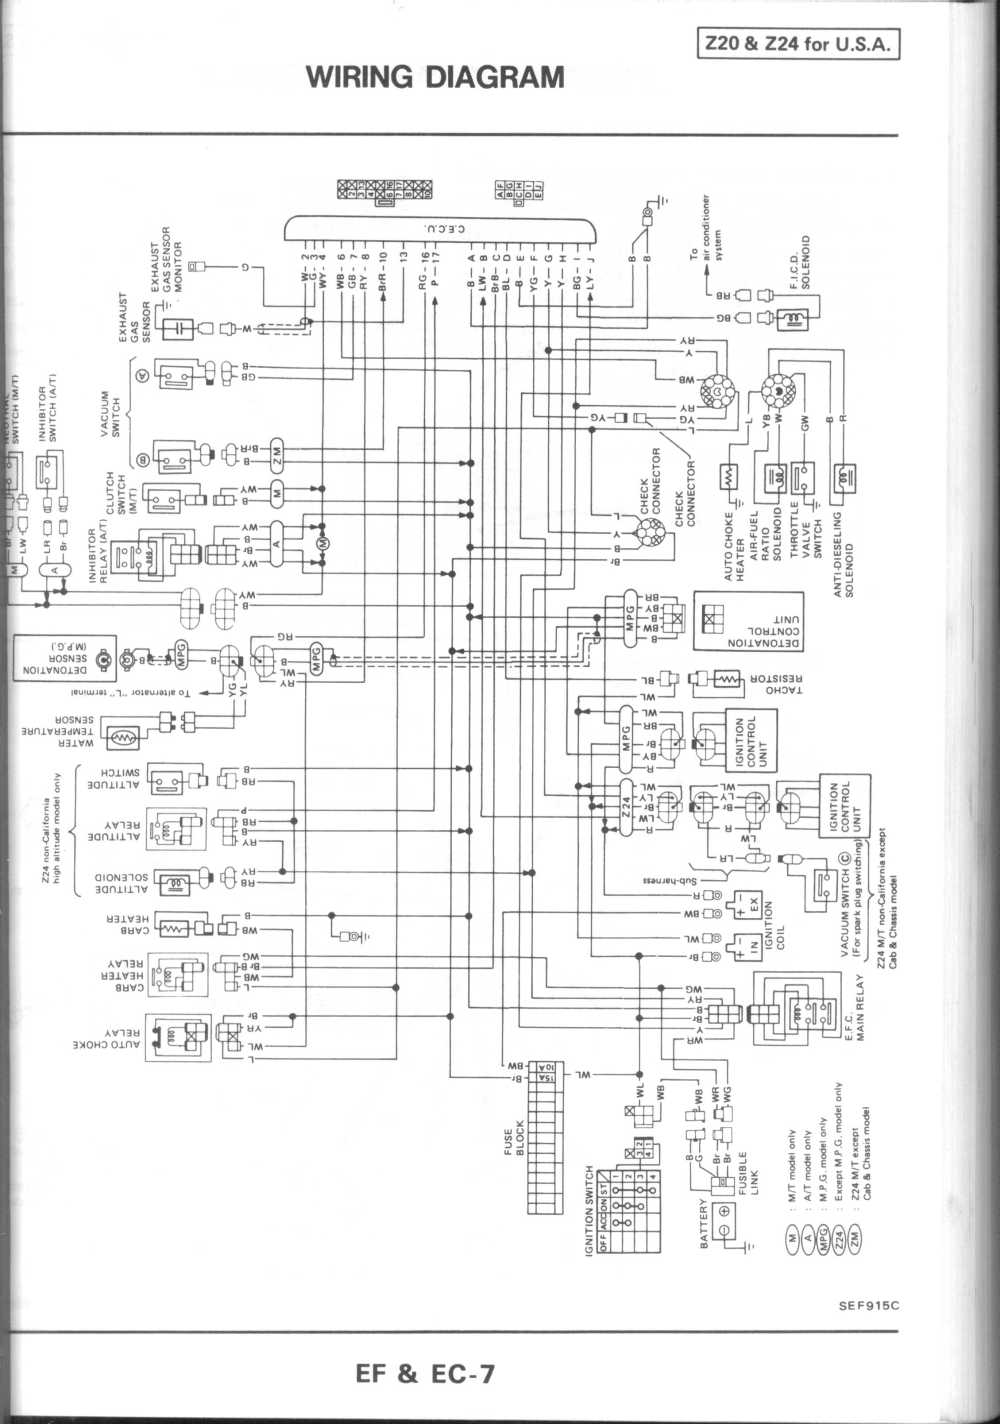 medium resolution of nissan 720 wiring diagram wiring diagram list 86 nissan 720 wiring diagram wiring diagram name nissan